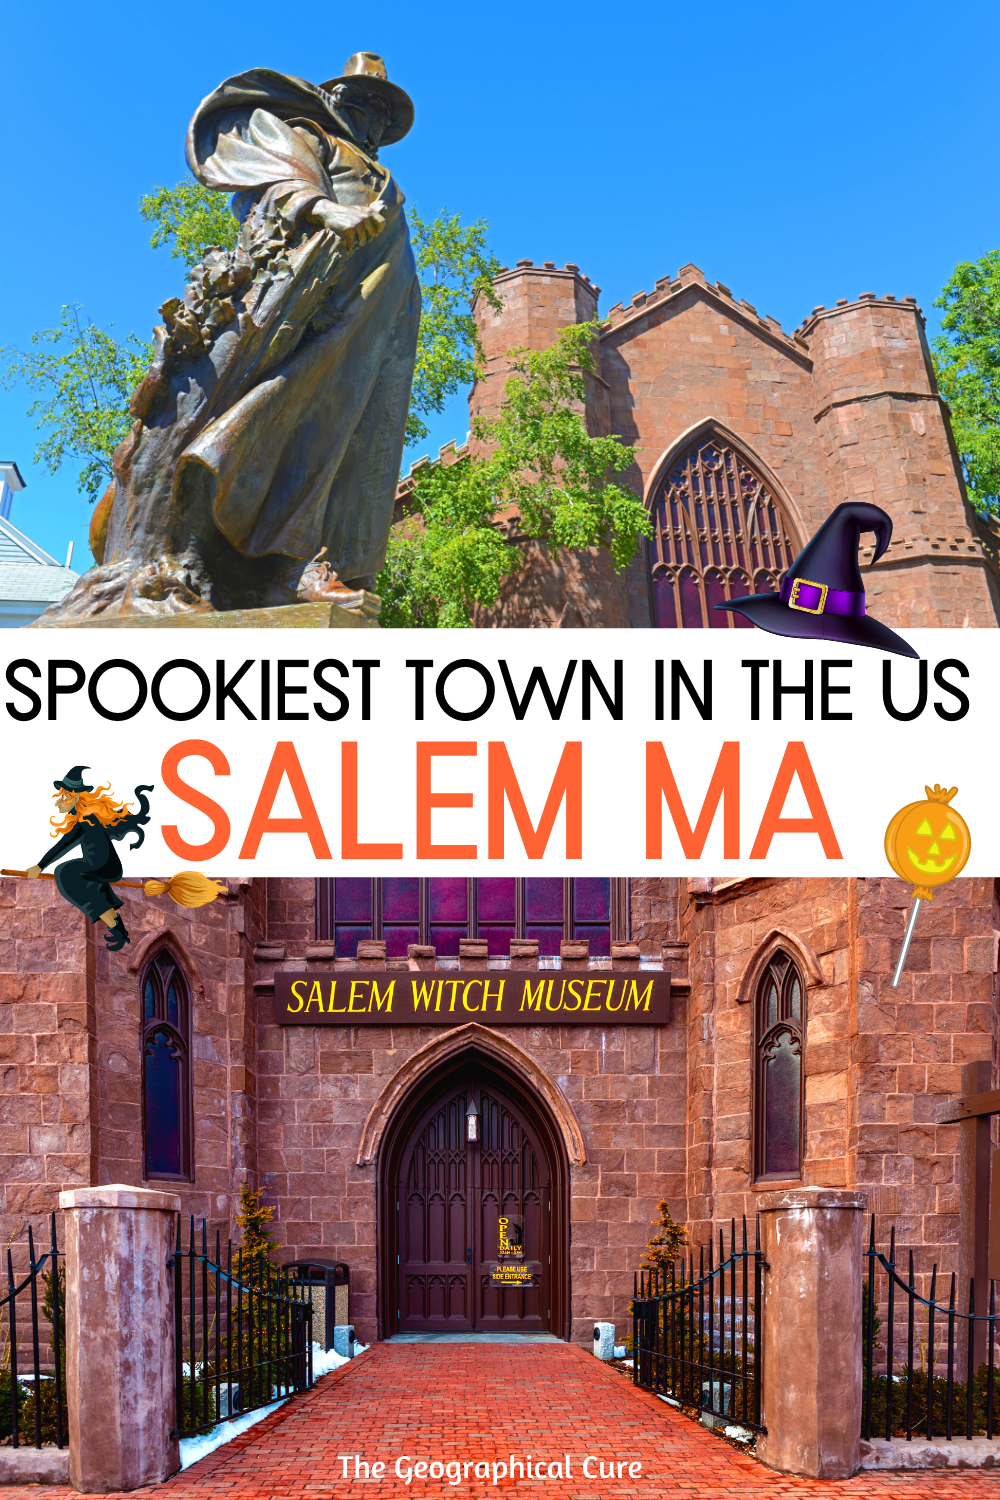 Must See Historic Sites in Salem Massachusetts, the Spookiest Town in the Untied States